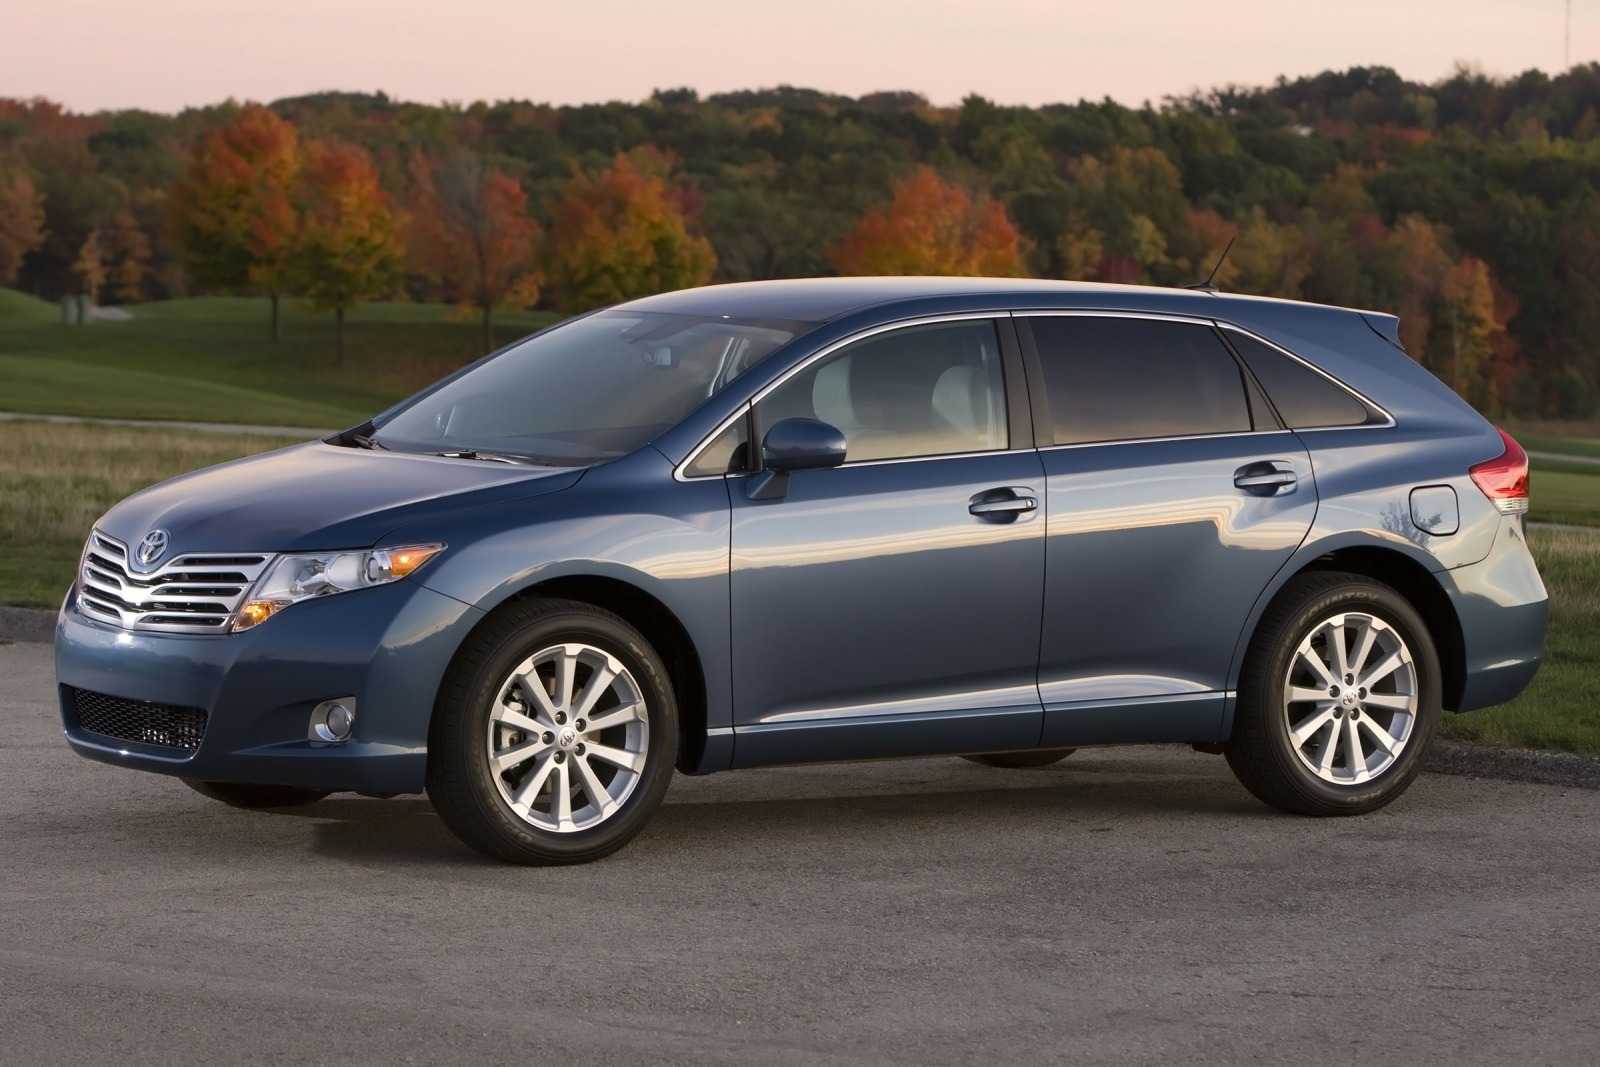 2012 Toyota Venza Limited exterior #3